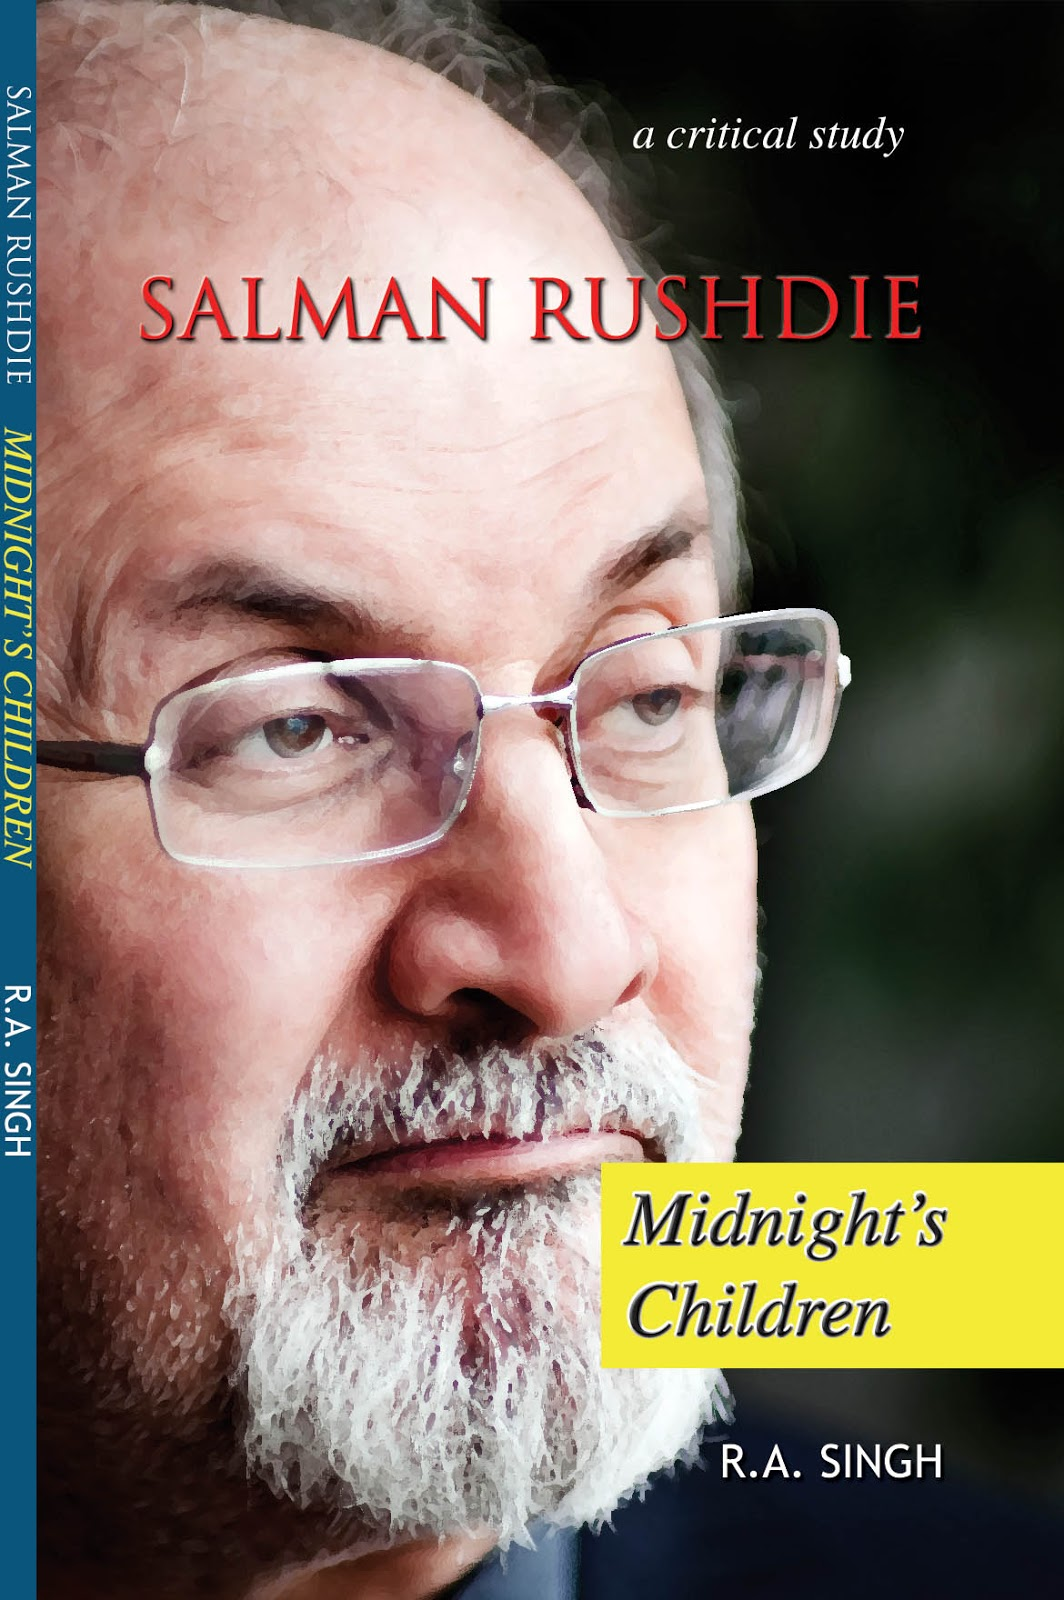 prakash book depot bareilly views and news salman rushdie salman rushdie midnight s children